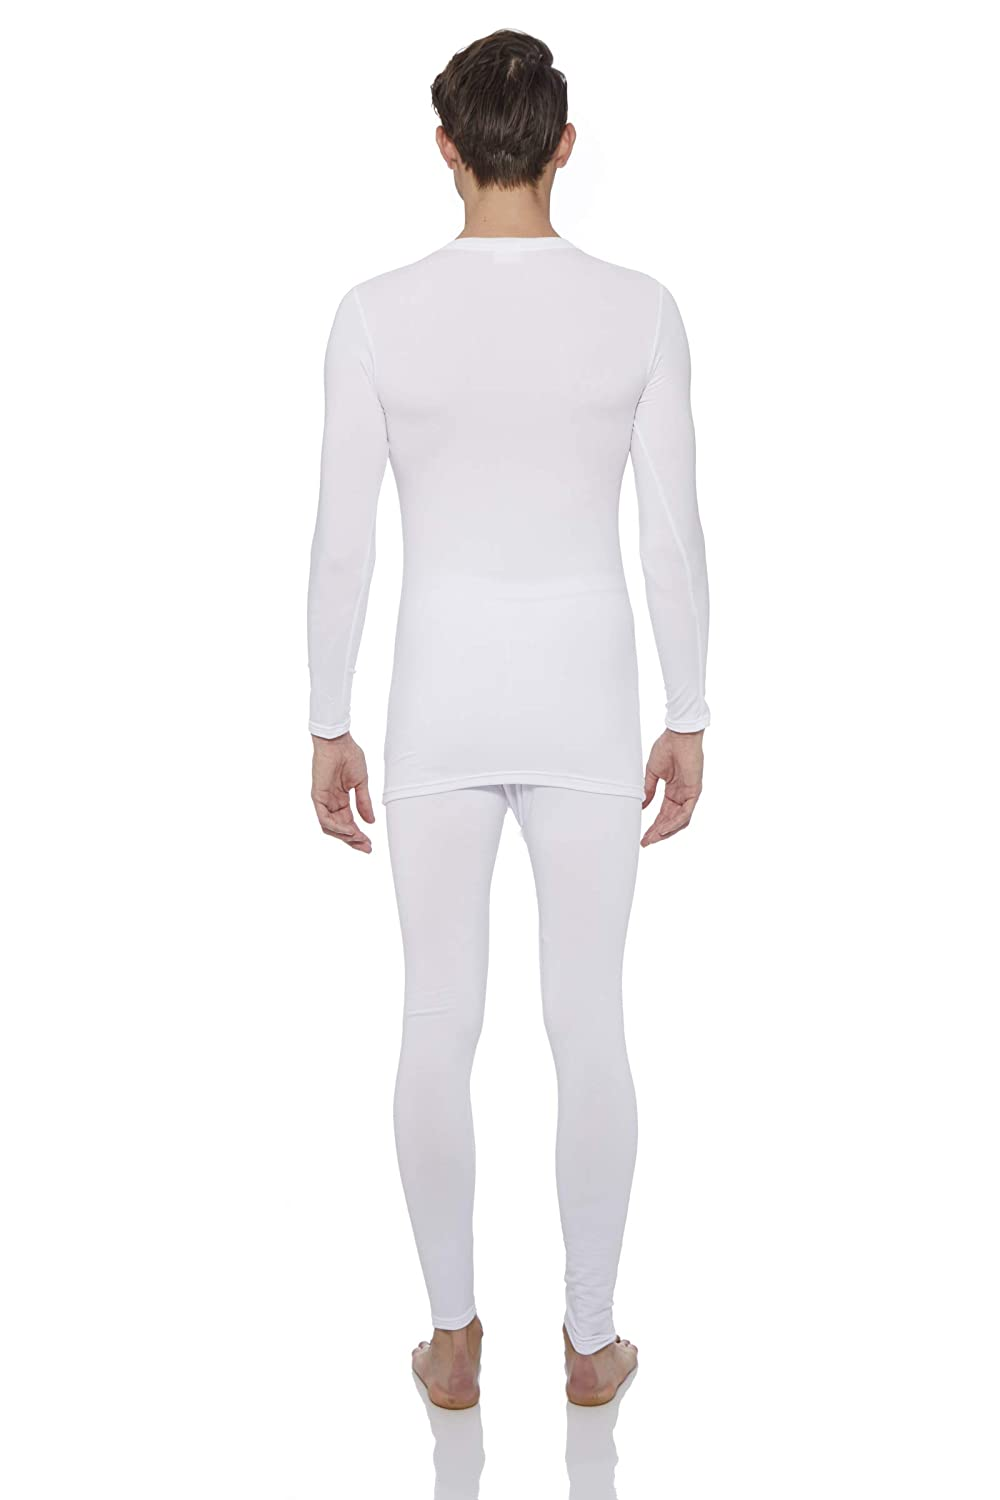 ROCKY Thermal Underwear for Men Fleece Lined Thermals Mens Base Layer Long John Set White